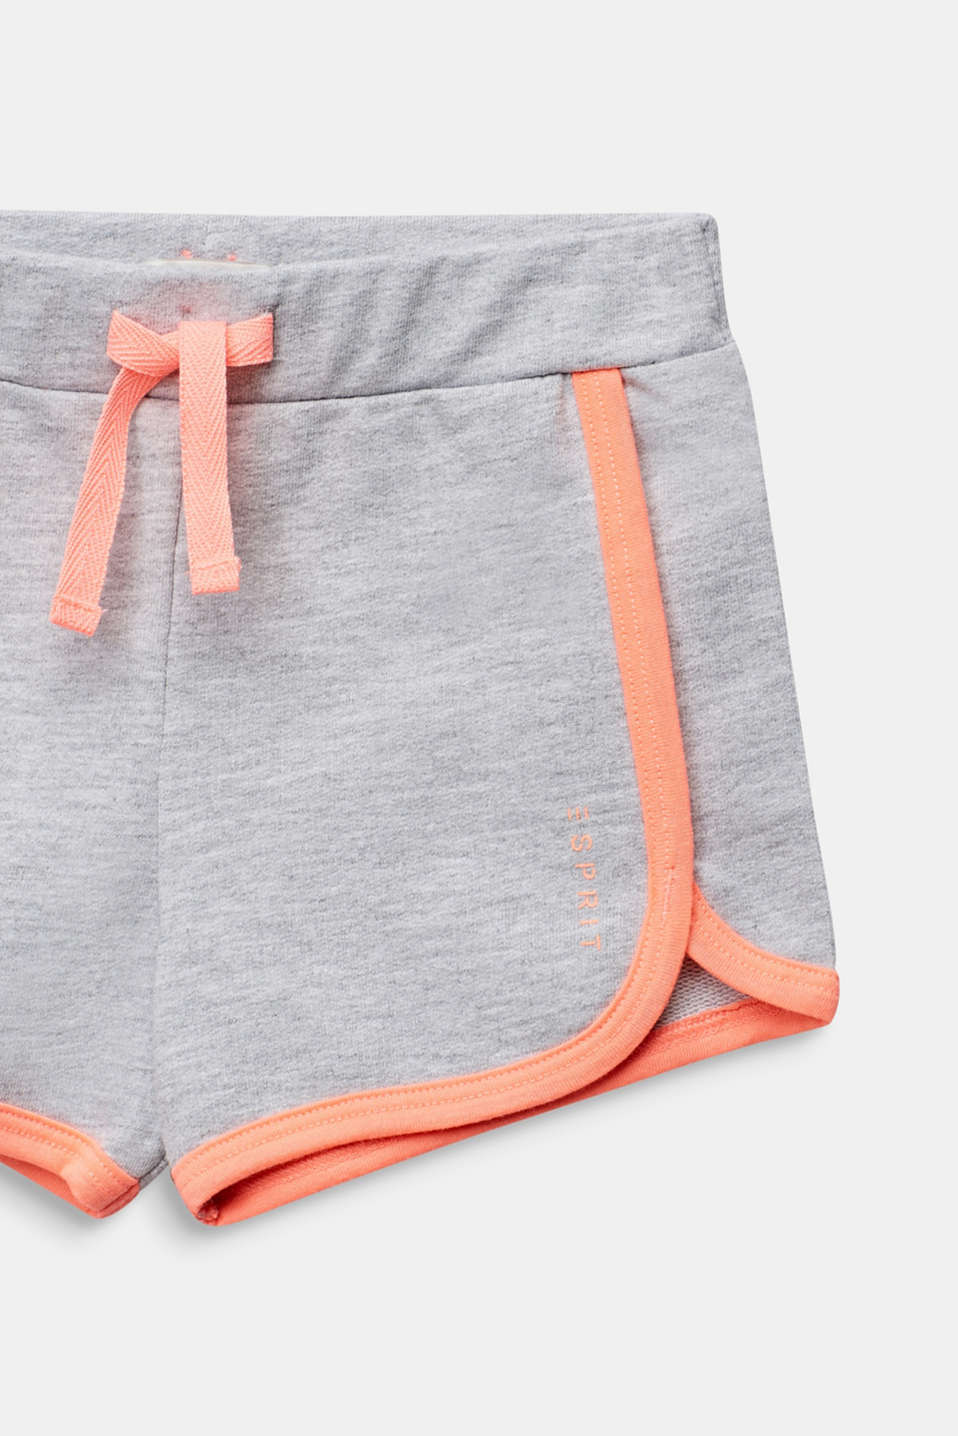 Sweat shorts with NEON, 100% cotton, HEATHER SILVER, detail image number 2